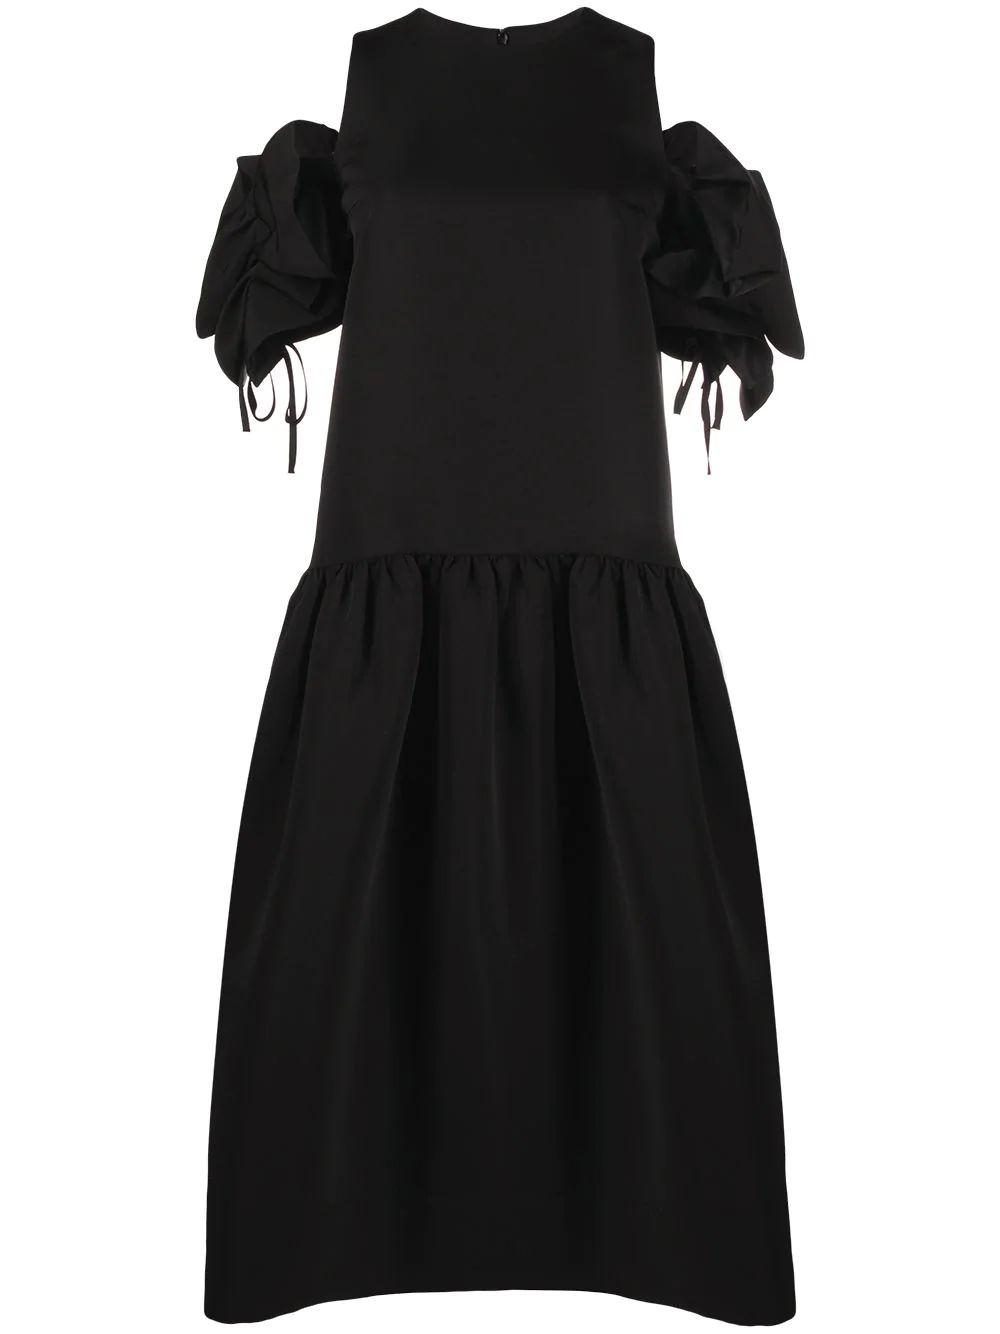 Drop Waist Dress With Ruffle Sleeves Item # 2121WDR002324A